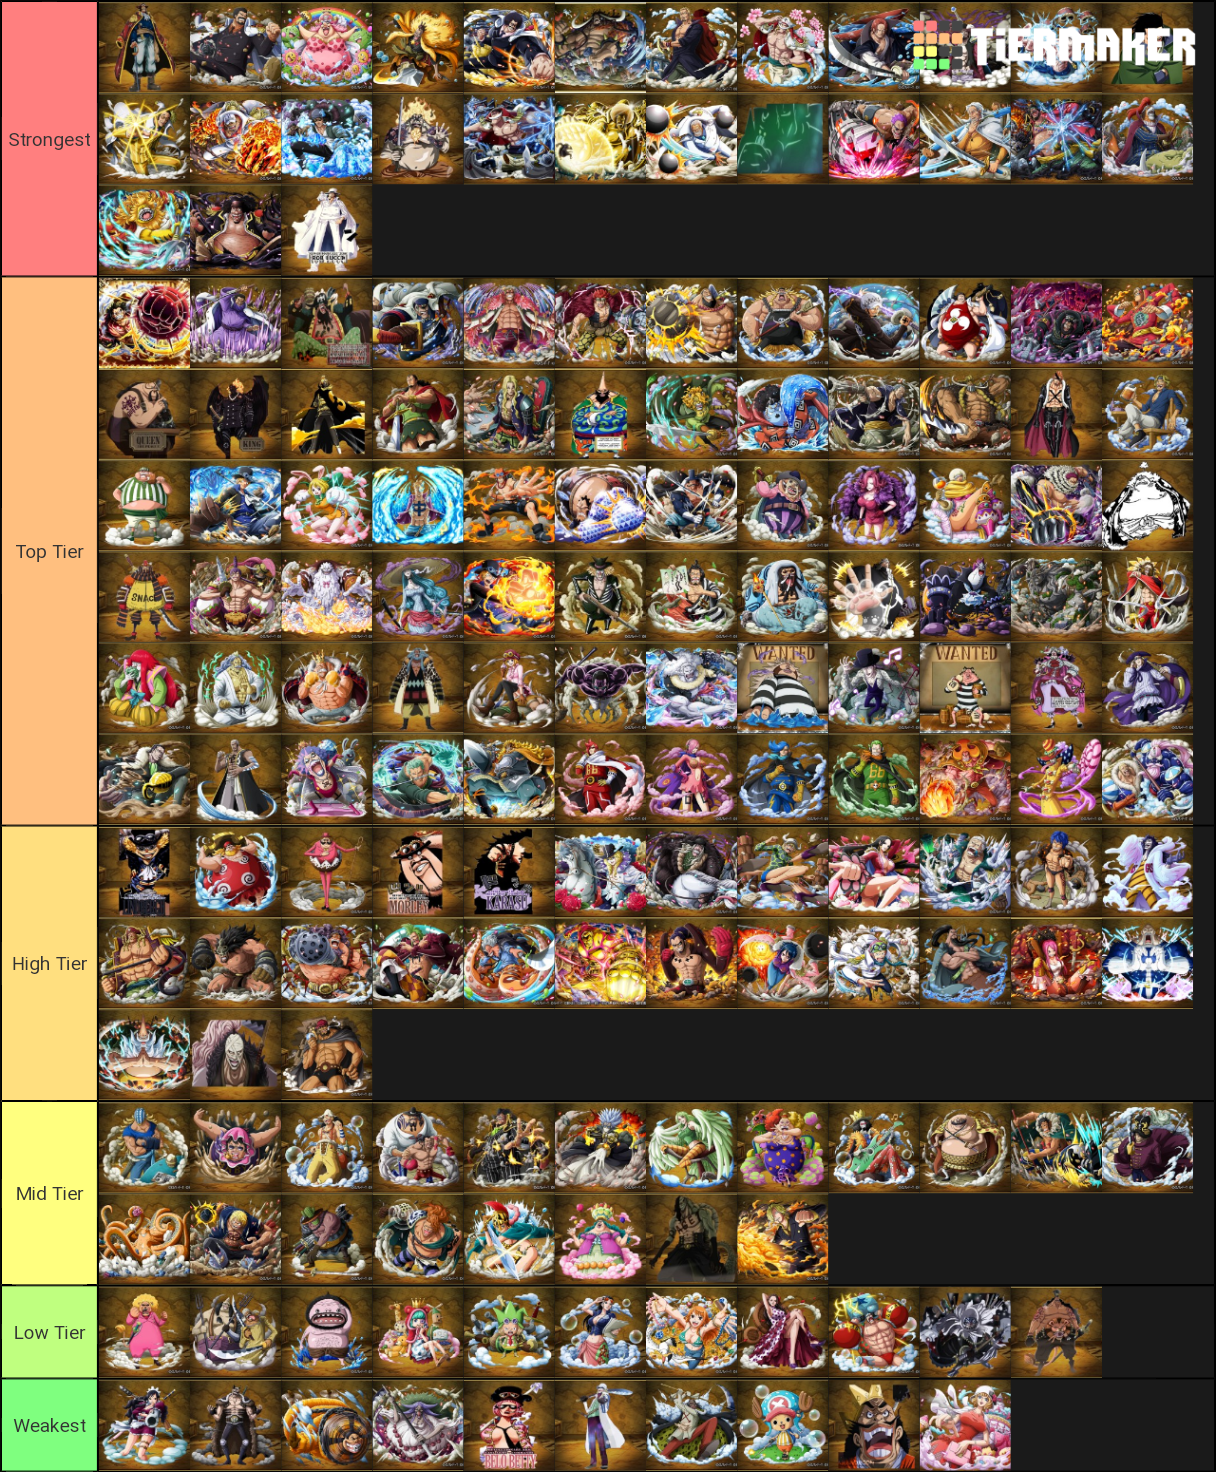 If you're bored then check my tierlist